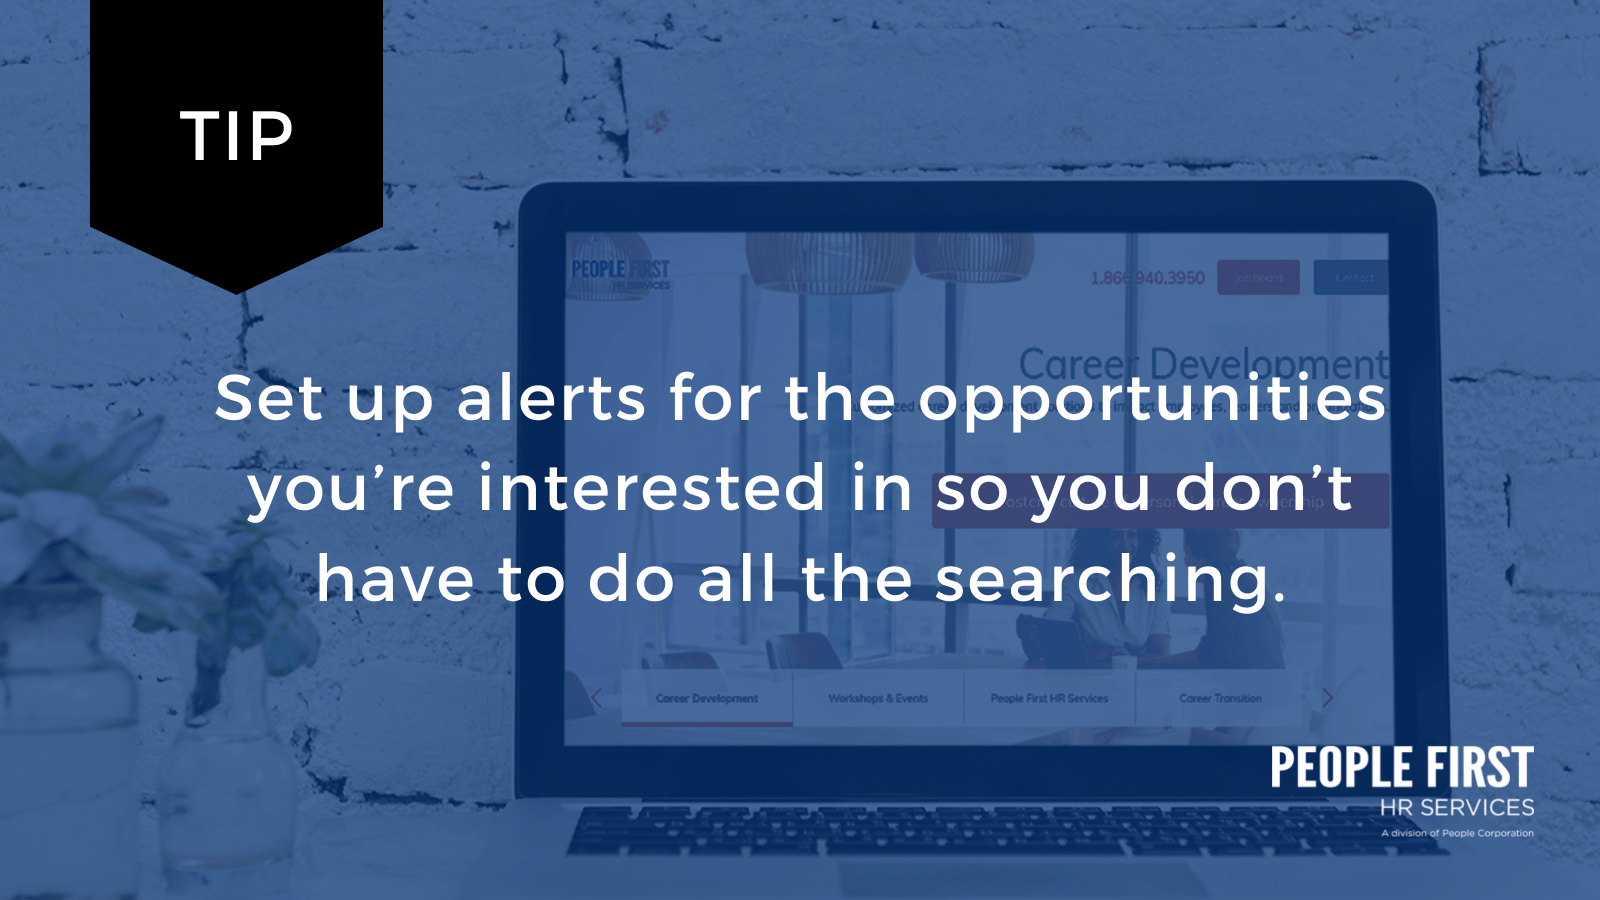 Tip: et up alerts for the opportunities you're interested in so you don't have to do all the searching.